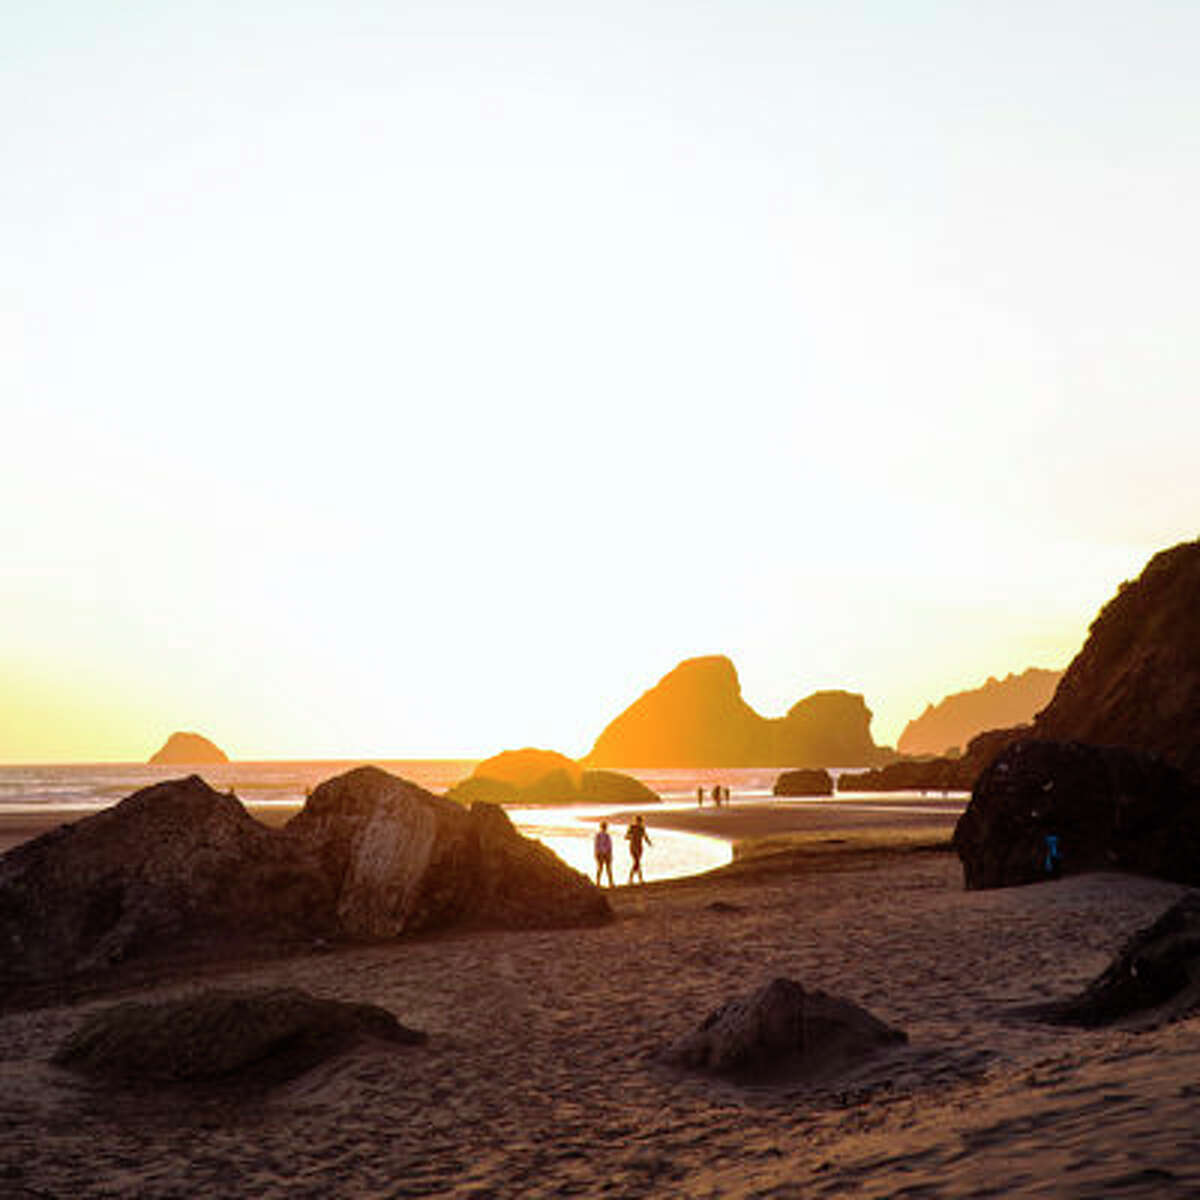 Moonstone Beach at sunset Sunset casts an orange glow on the outcroppings at Moonstone Beach.